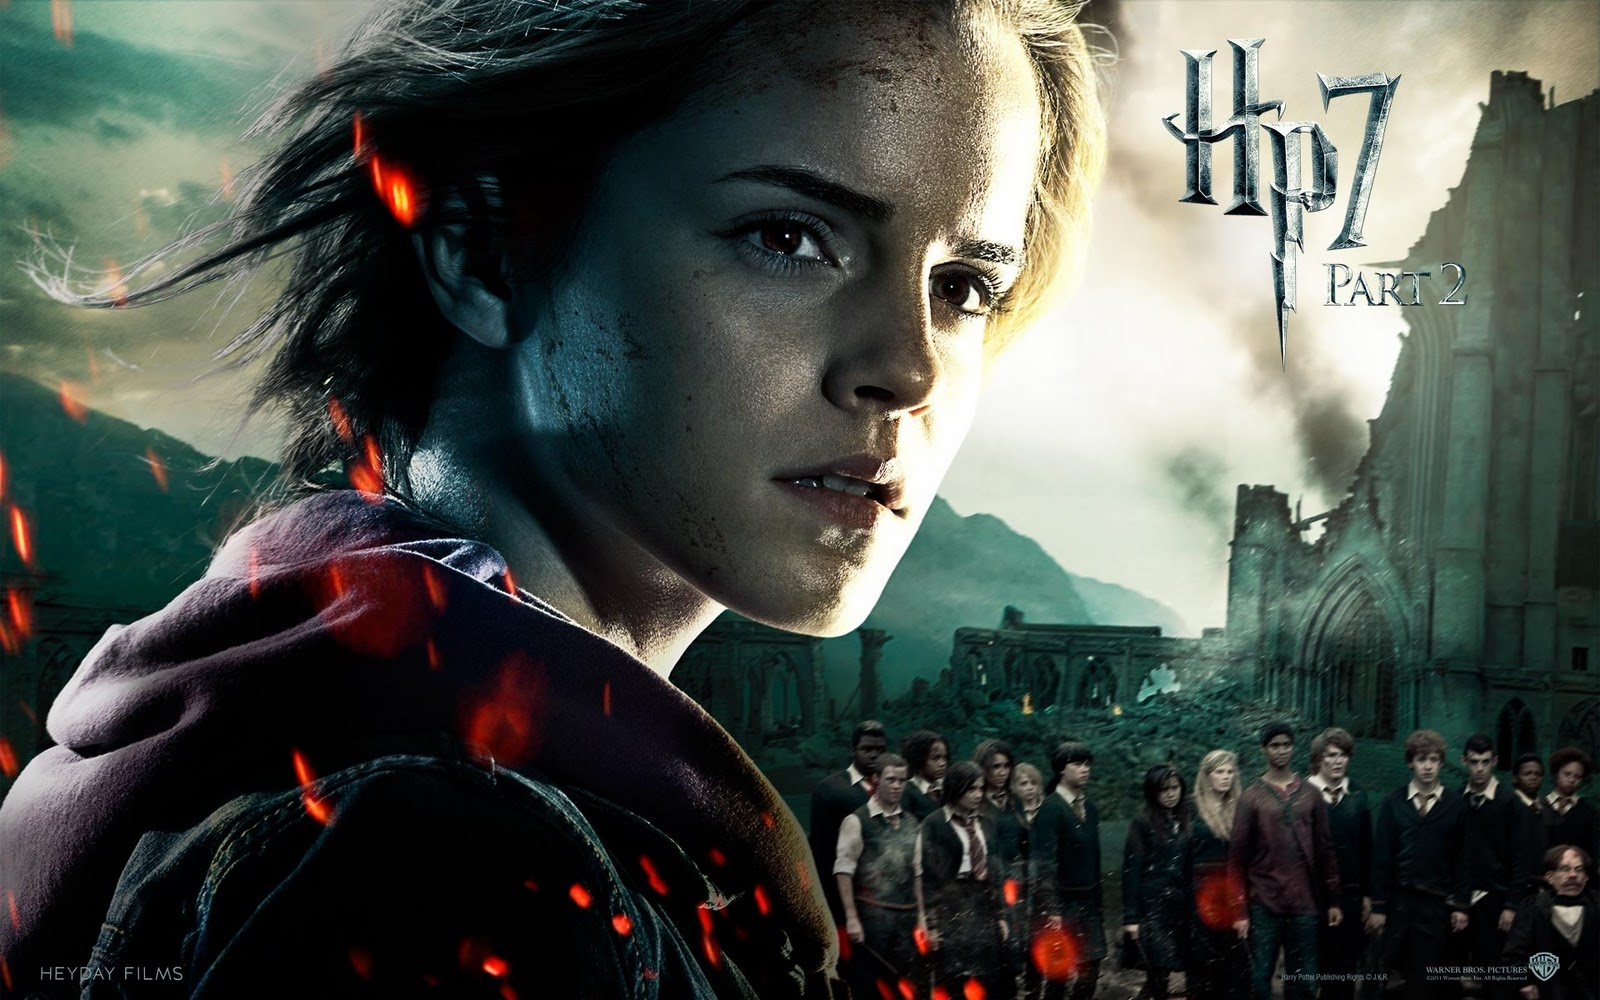 http://1.bp.blogspot.com/-E0iuwzD3tUg/TvbmLkW9rpI/AAAAAAAACLc/DptddVPW14I/s1600/Harry-Potter-and-The-Deathly-Hallows-Part-2-Wallpapers-02.jpg